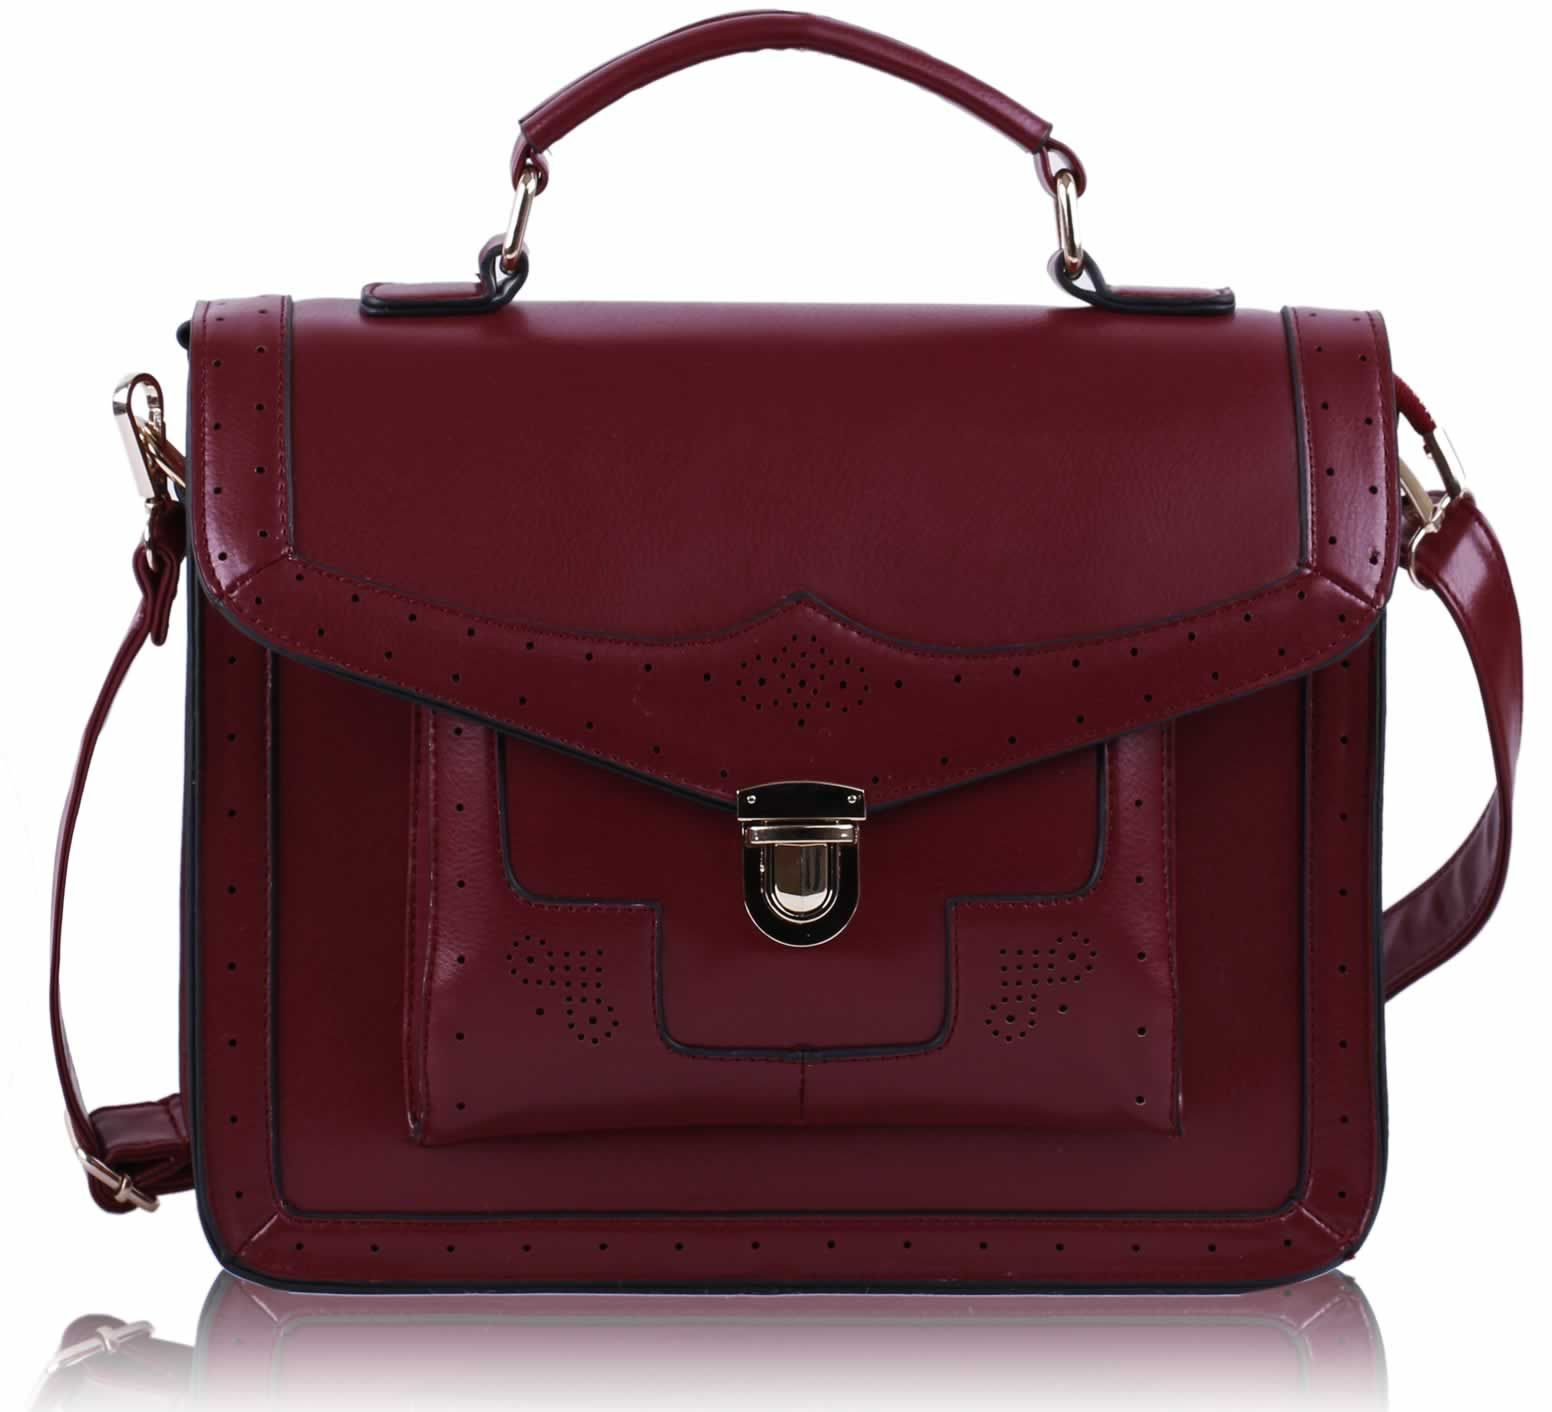 Burgundy Satchel Bag | Bags!!! | Pinterest | Satchels, Bag and ...